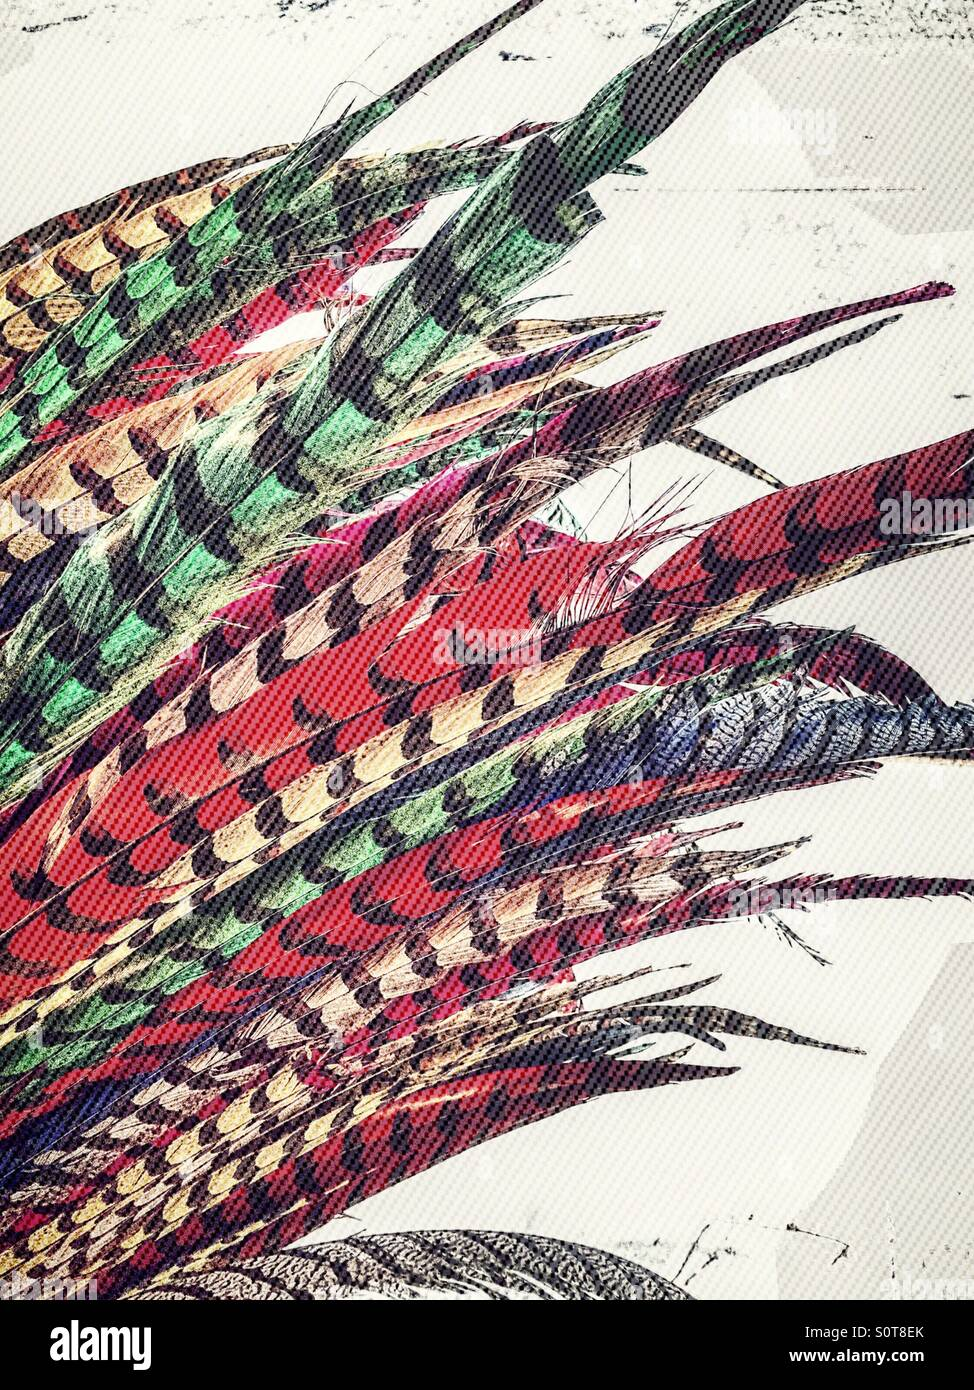 Feathers - Stock Image